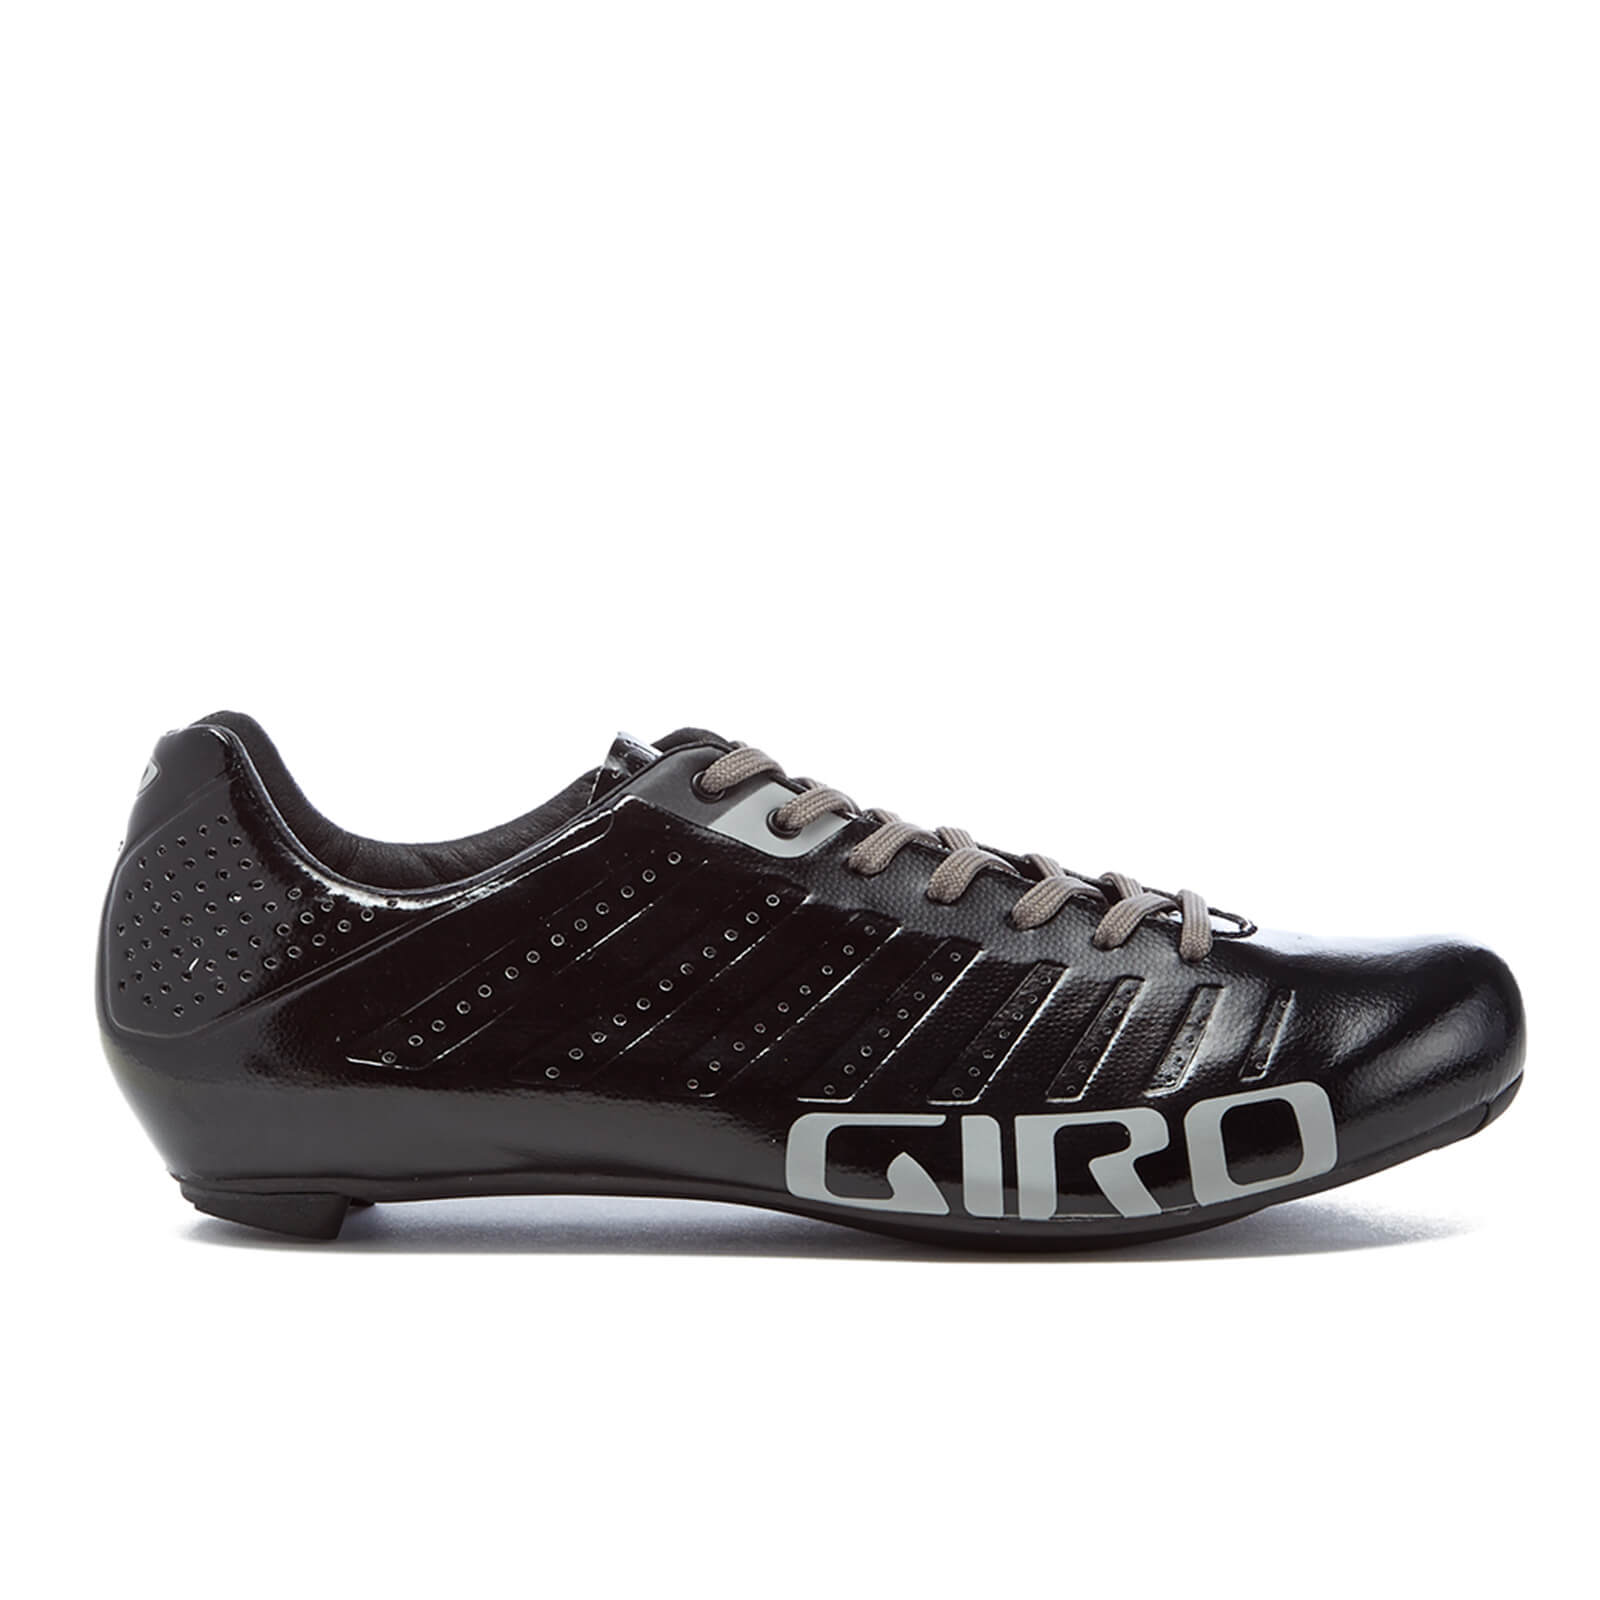 Giro Empire SLX Road Cycling Shoes - Black/Silver